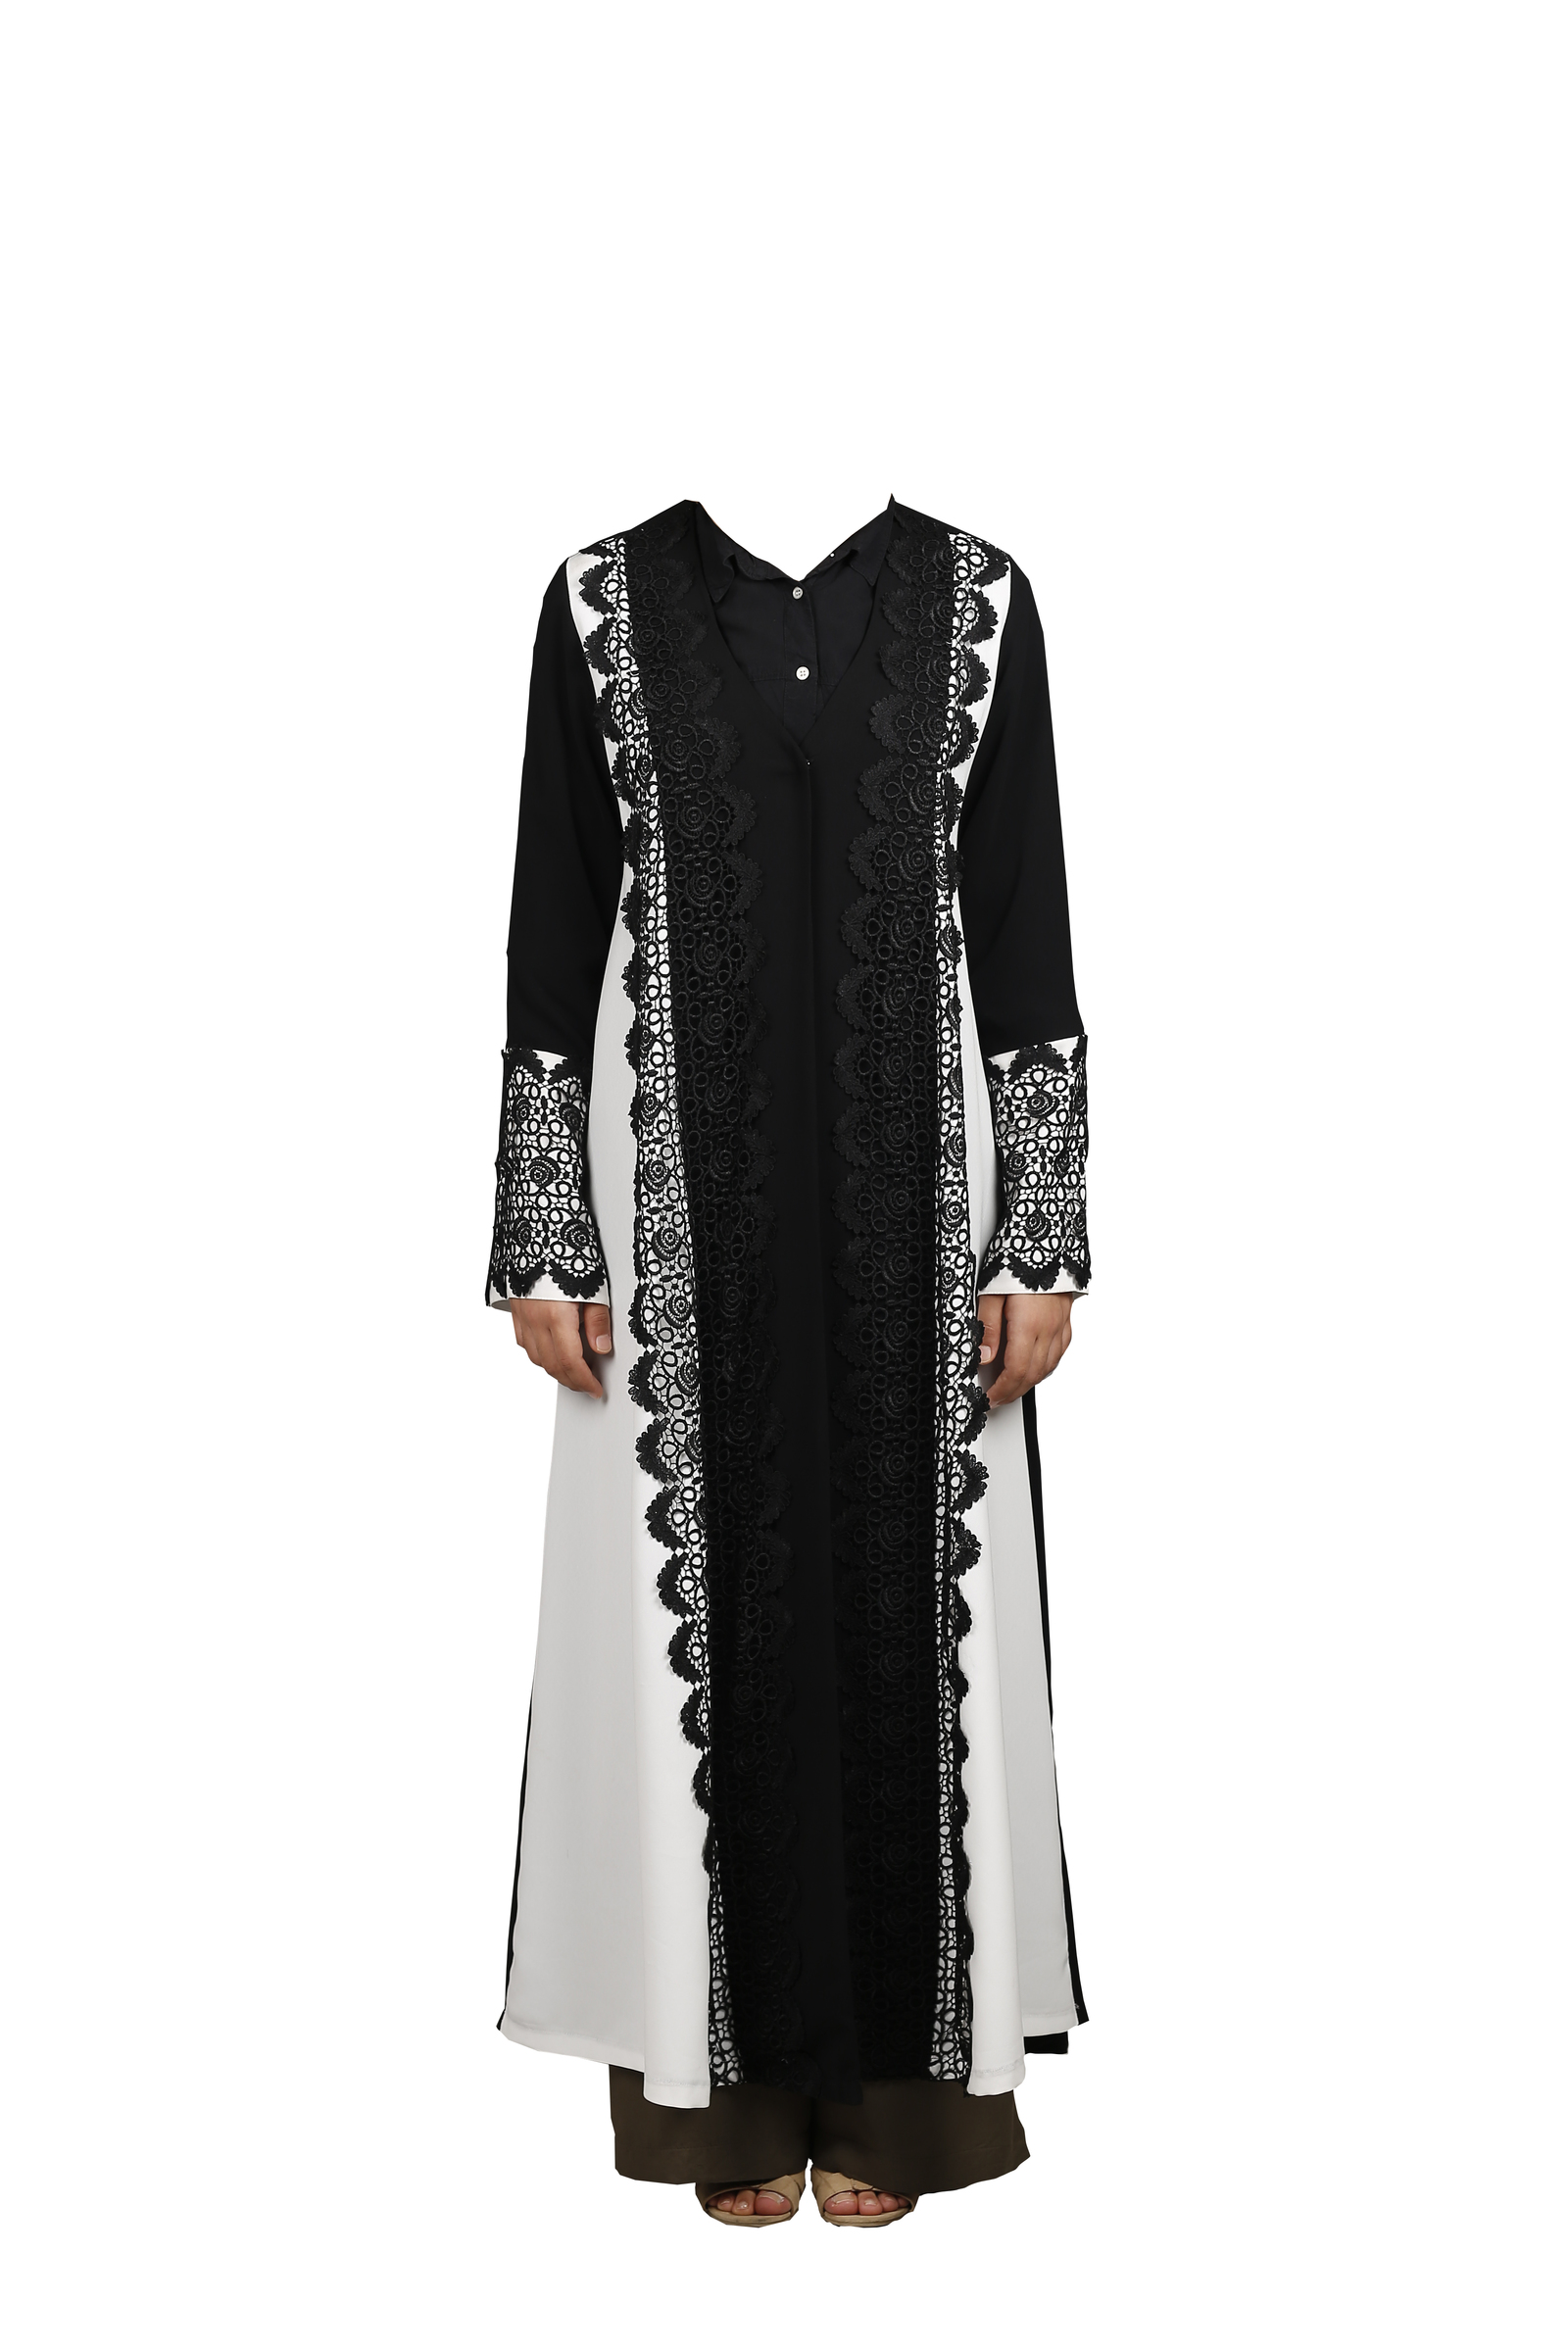 FSHTU011800048  Turkish Jubah - Black & White With EmbroideryTurkish Jubah - Black & White With Embroidery A.jpg